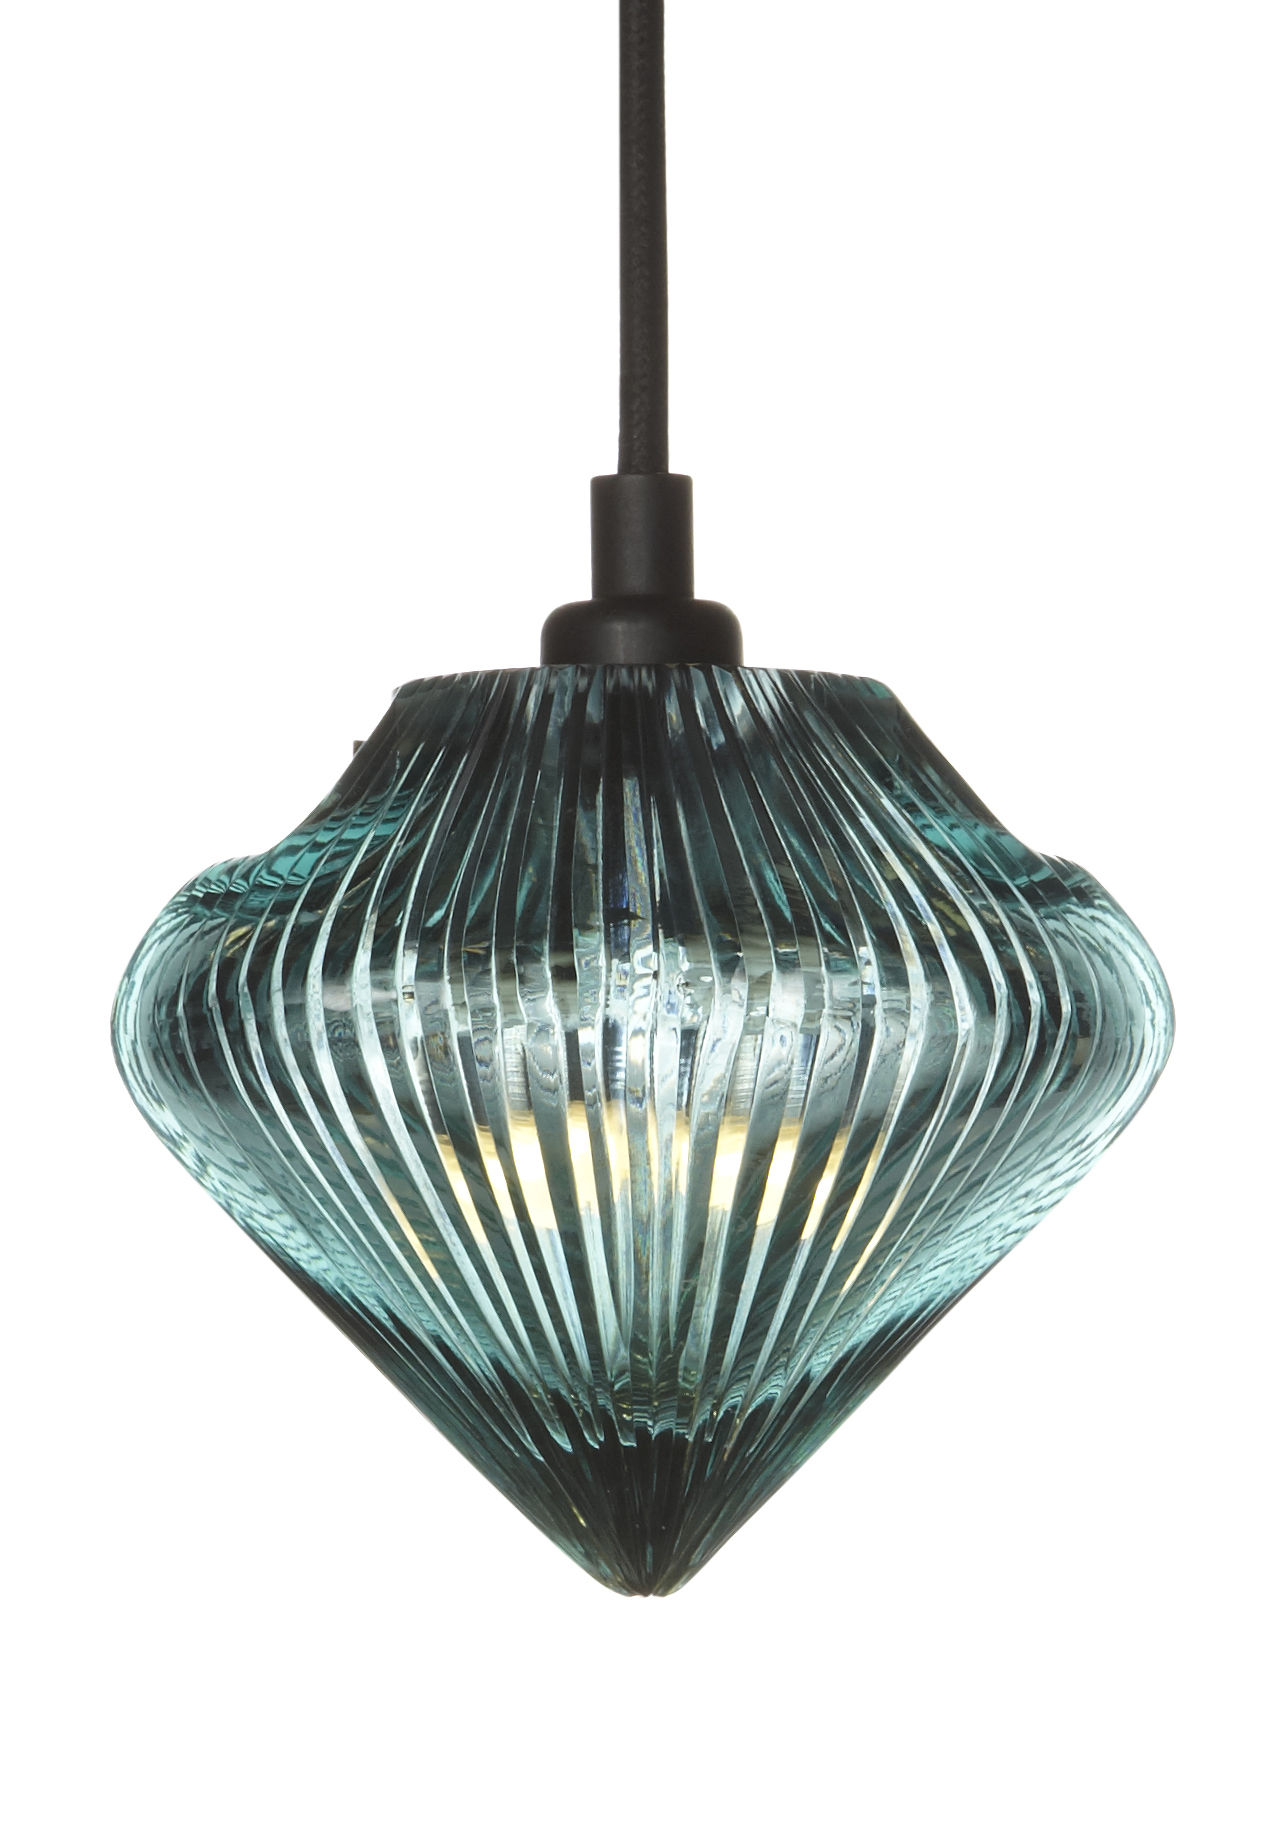 glass light top pendant transparent with blue reflects by tom dixon. Black Bedroom Furniture Sets. Home Design Ideas